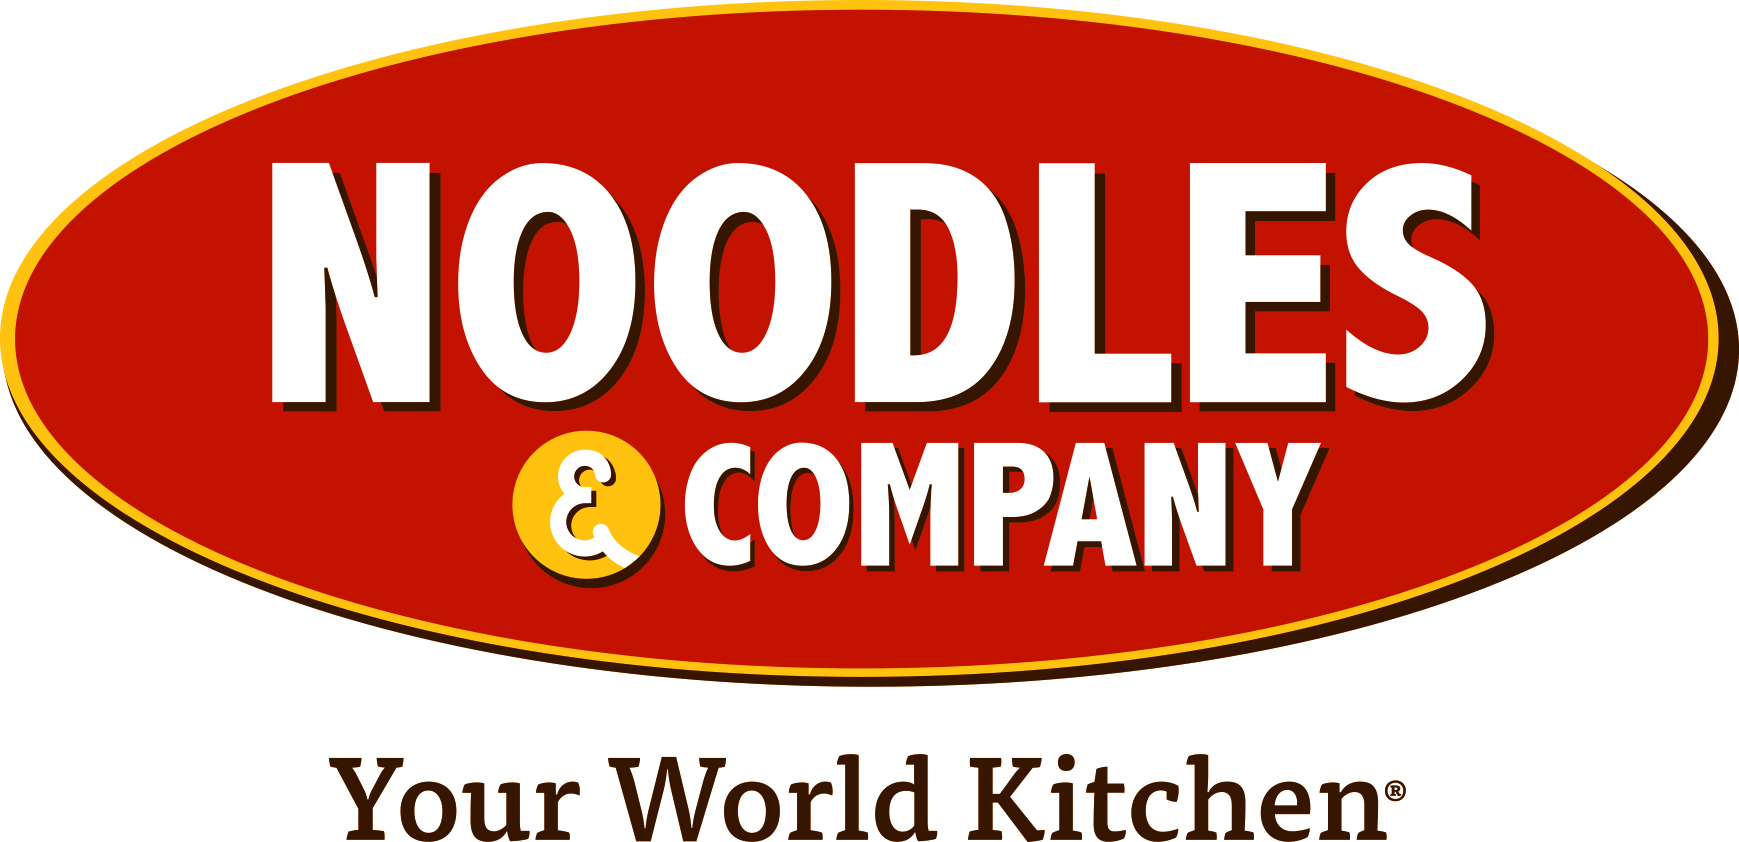 noodles and company Analyzing the noodles & company menu noodles & company world kitchen provides global flavors in the form of pasta bowls, soups, and salads entrees come in regular and small sizes.